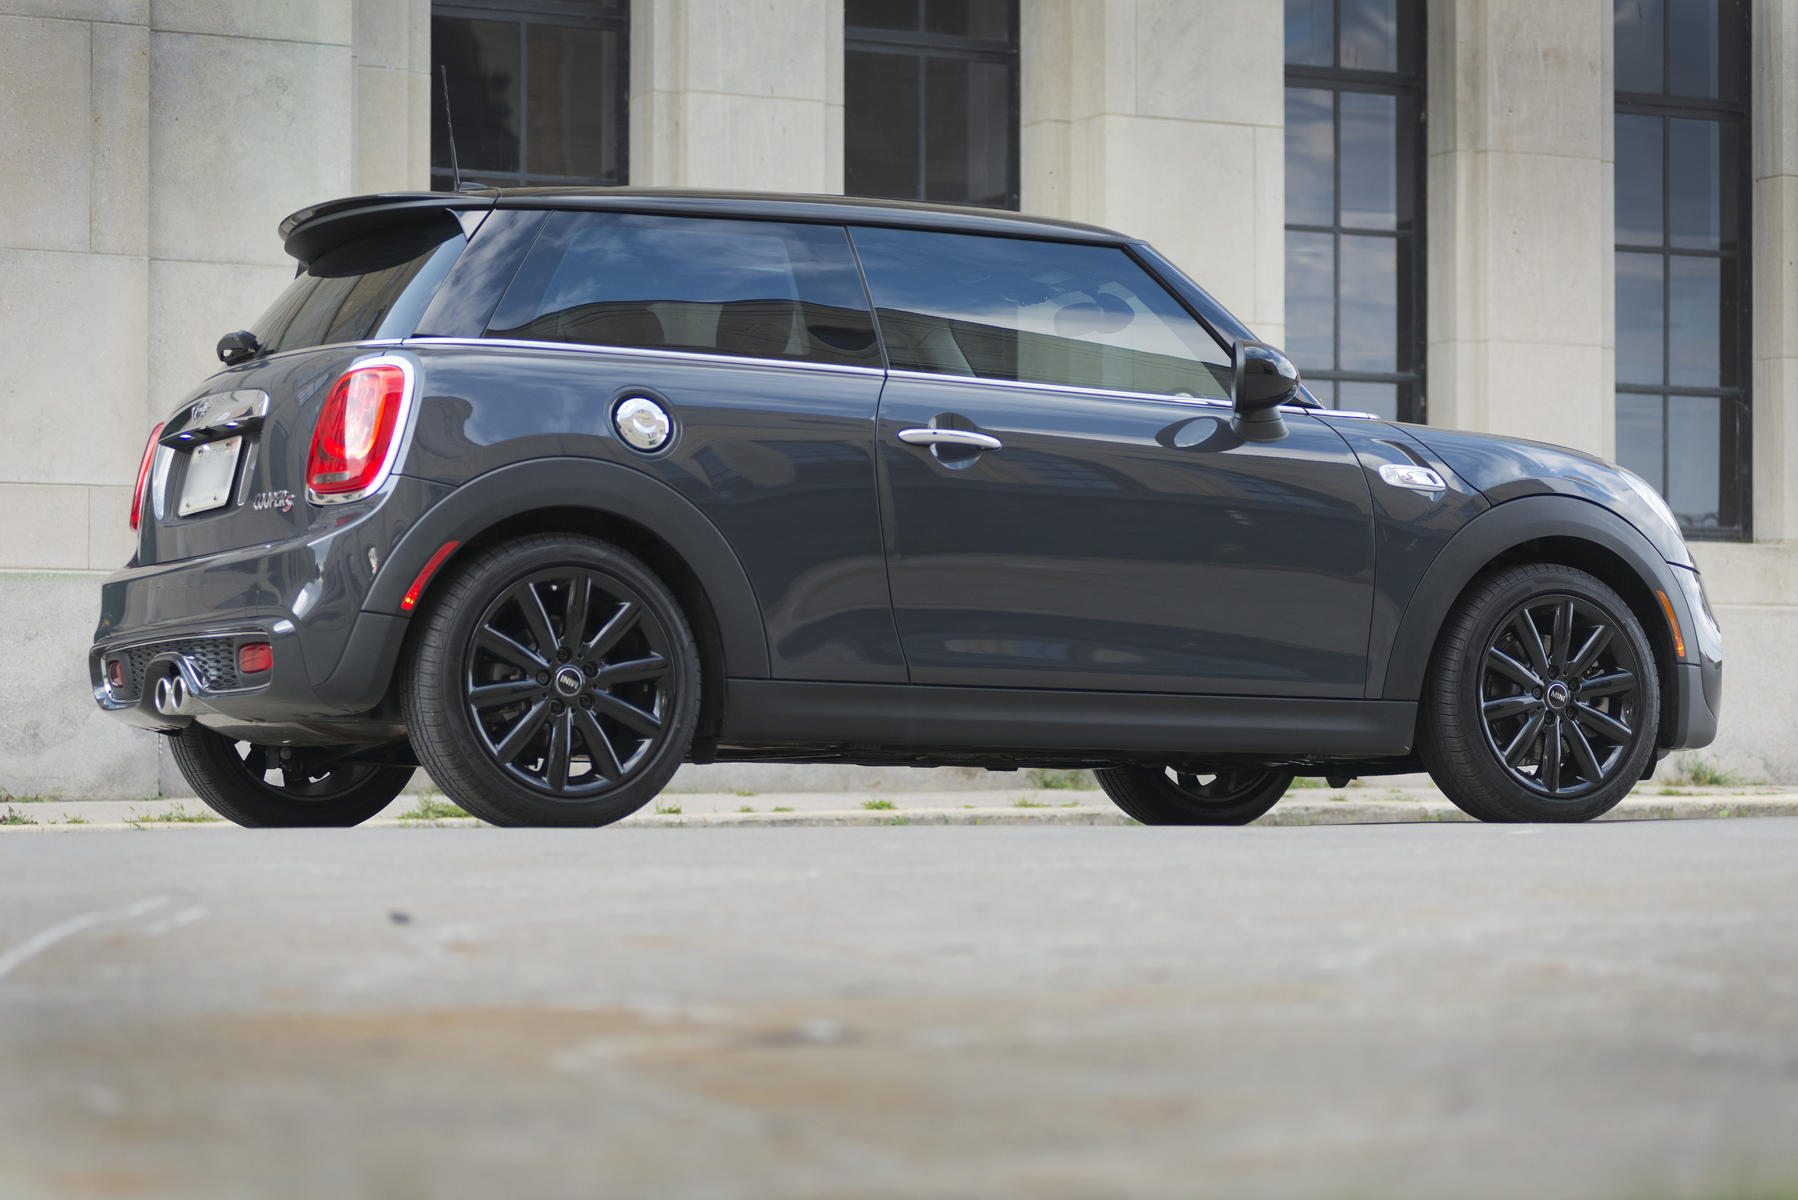 Thunder Grey Page 2 2015 Mini Cooper Forum